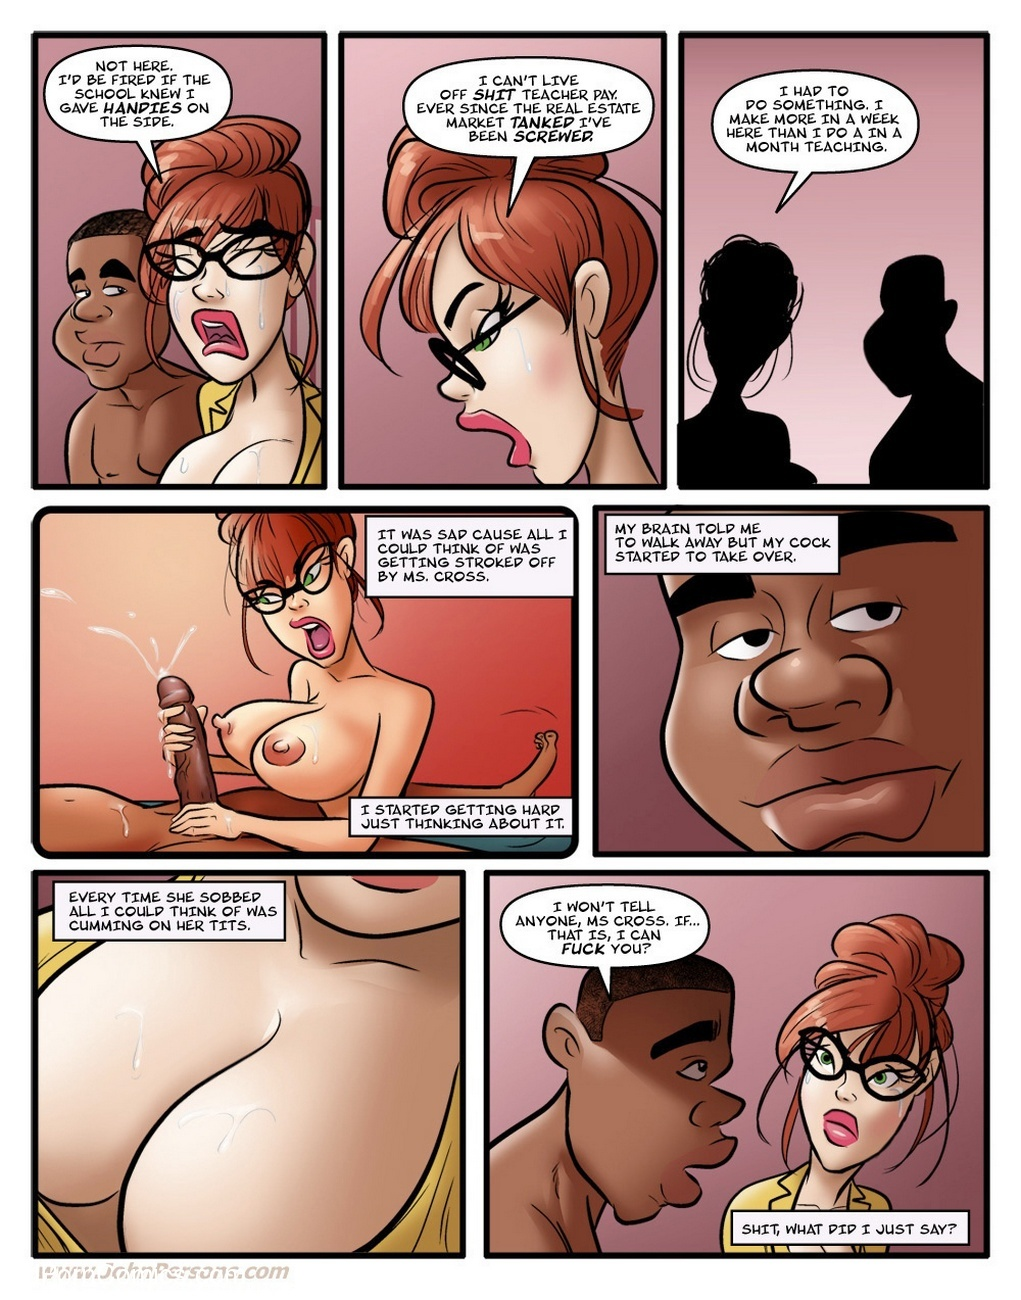 Hot For Ms Cross 1 5 free sex comic